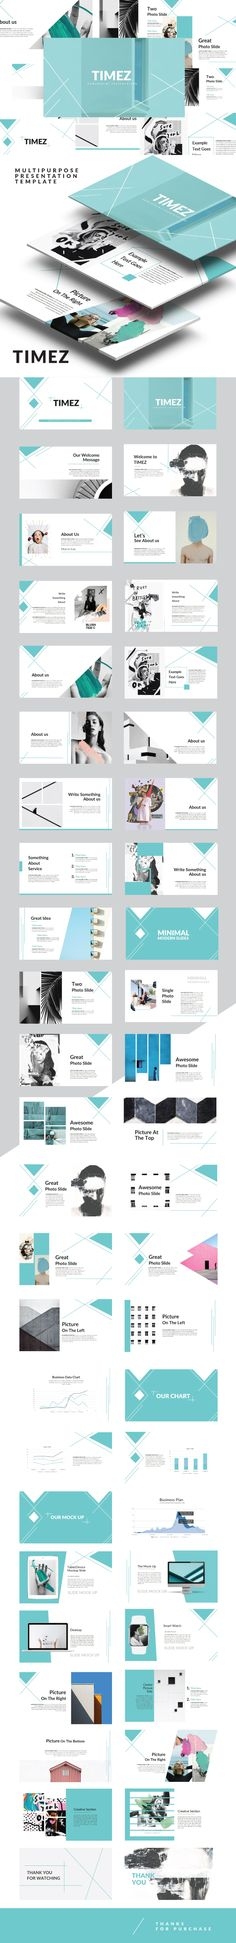 Timez Multipurpose Presentation Template - #PowerPoint #Templates Presentation Templates Download here: https://graphicriver.net/item/timez-multipurpose-presentation-template/19374218?ref=alena994